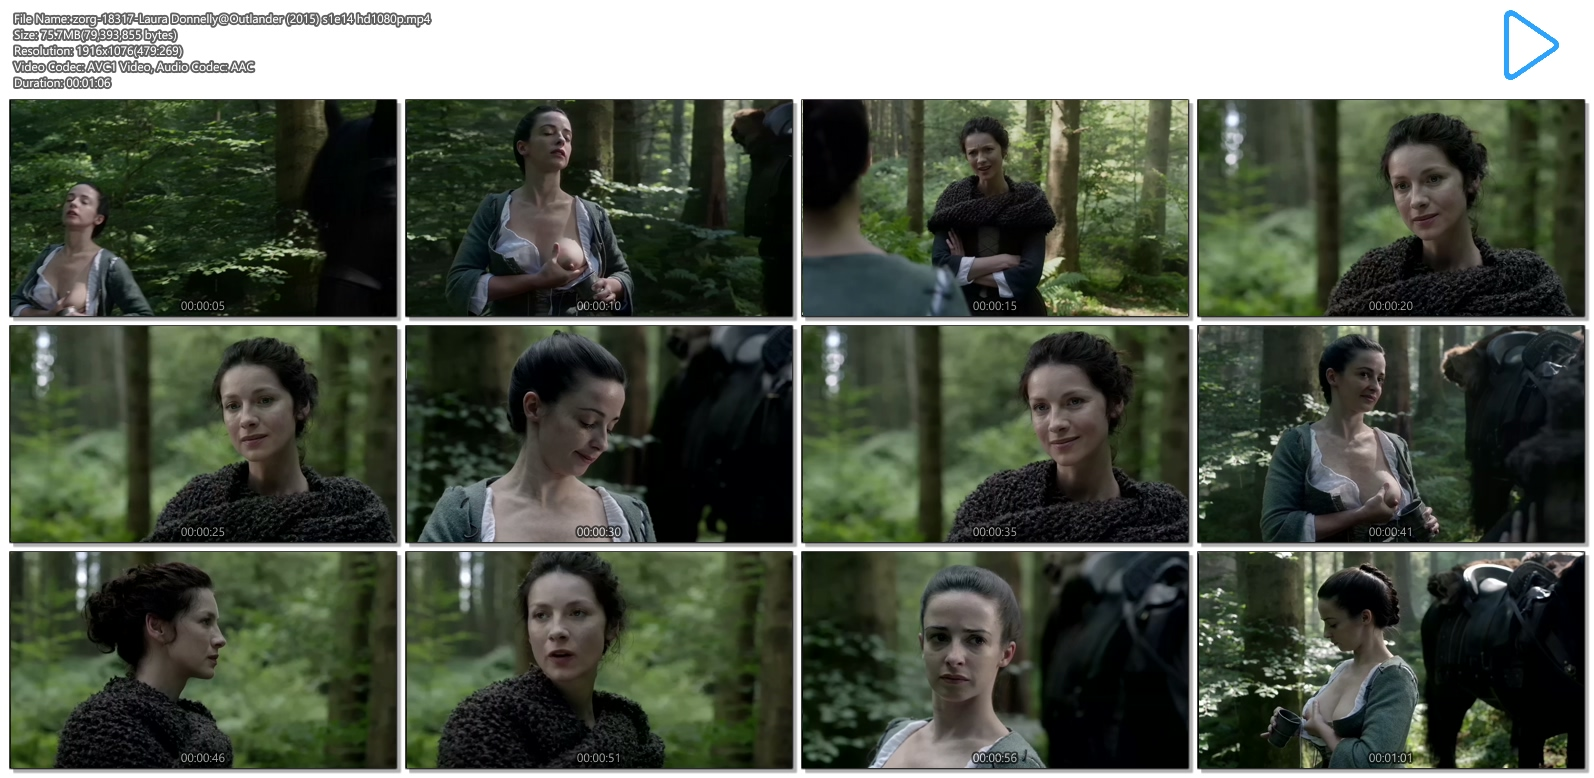 Laura Donnelly nude topless milking herself - Outlander (2015) s1e14 hd720-1080p (7)